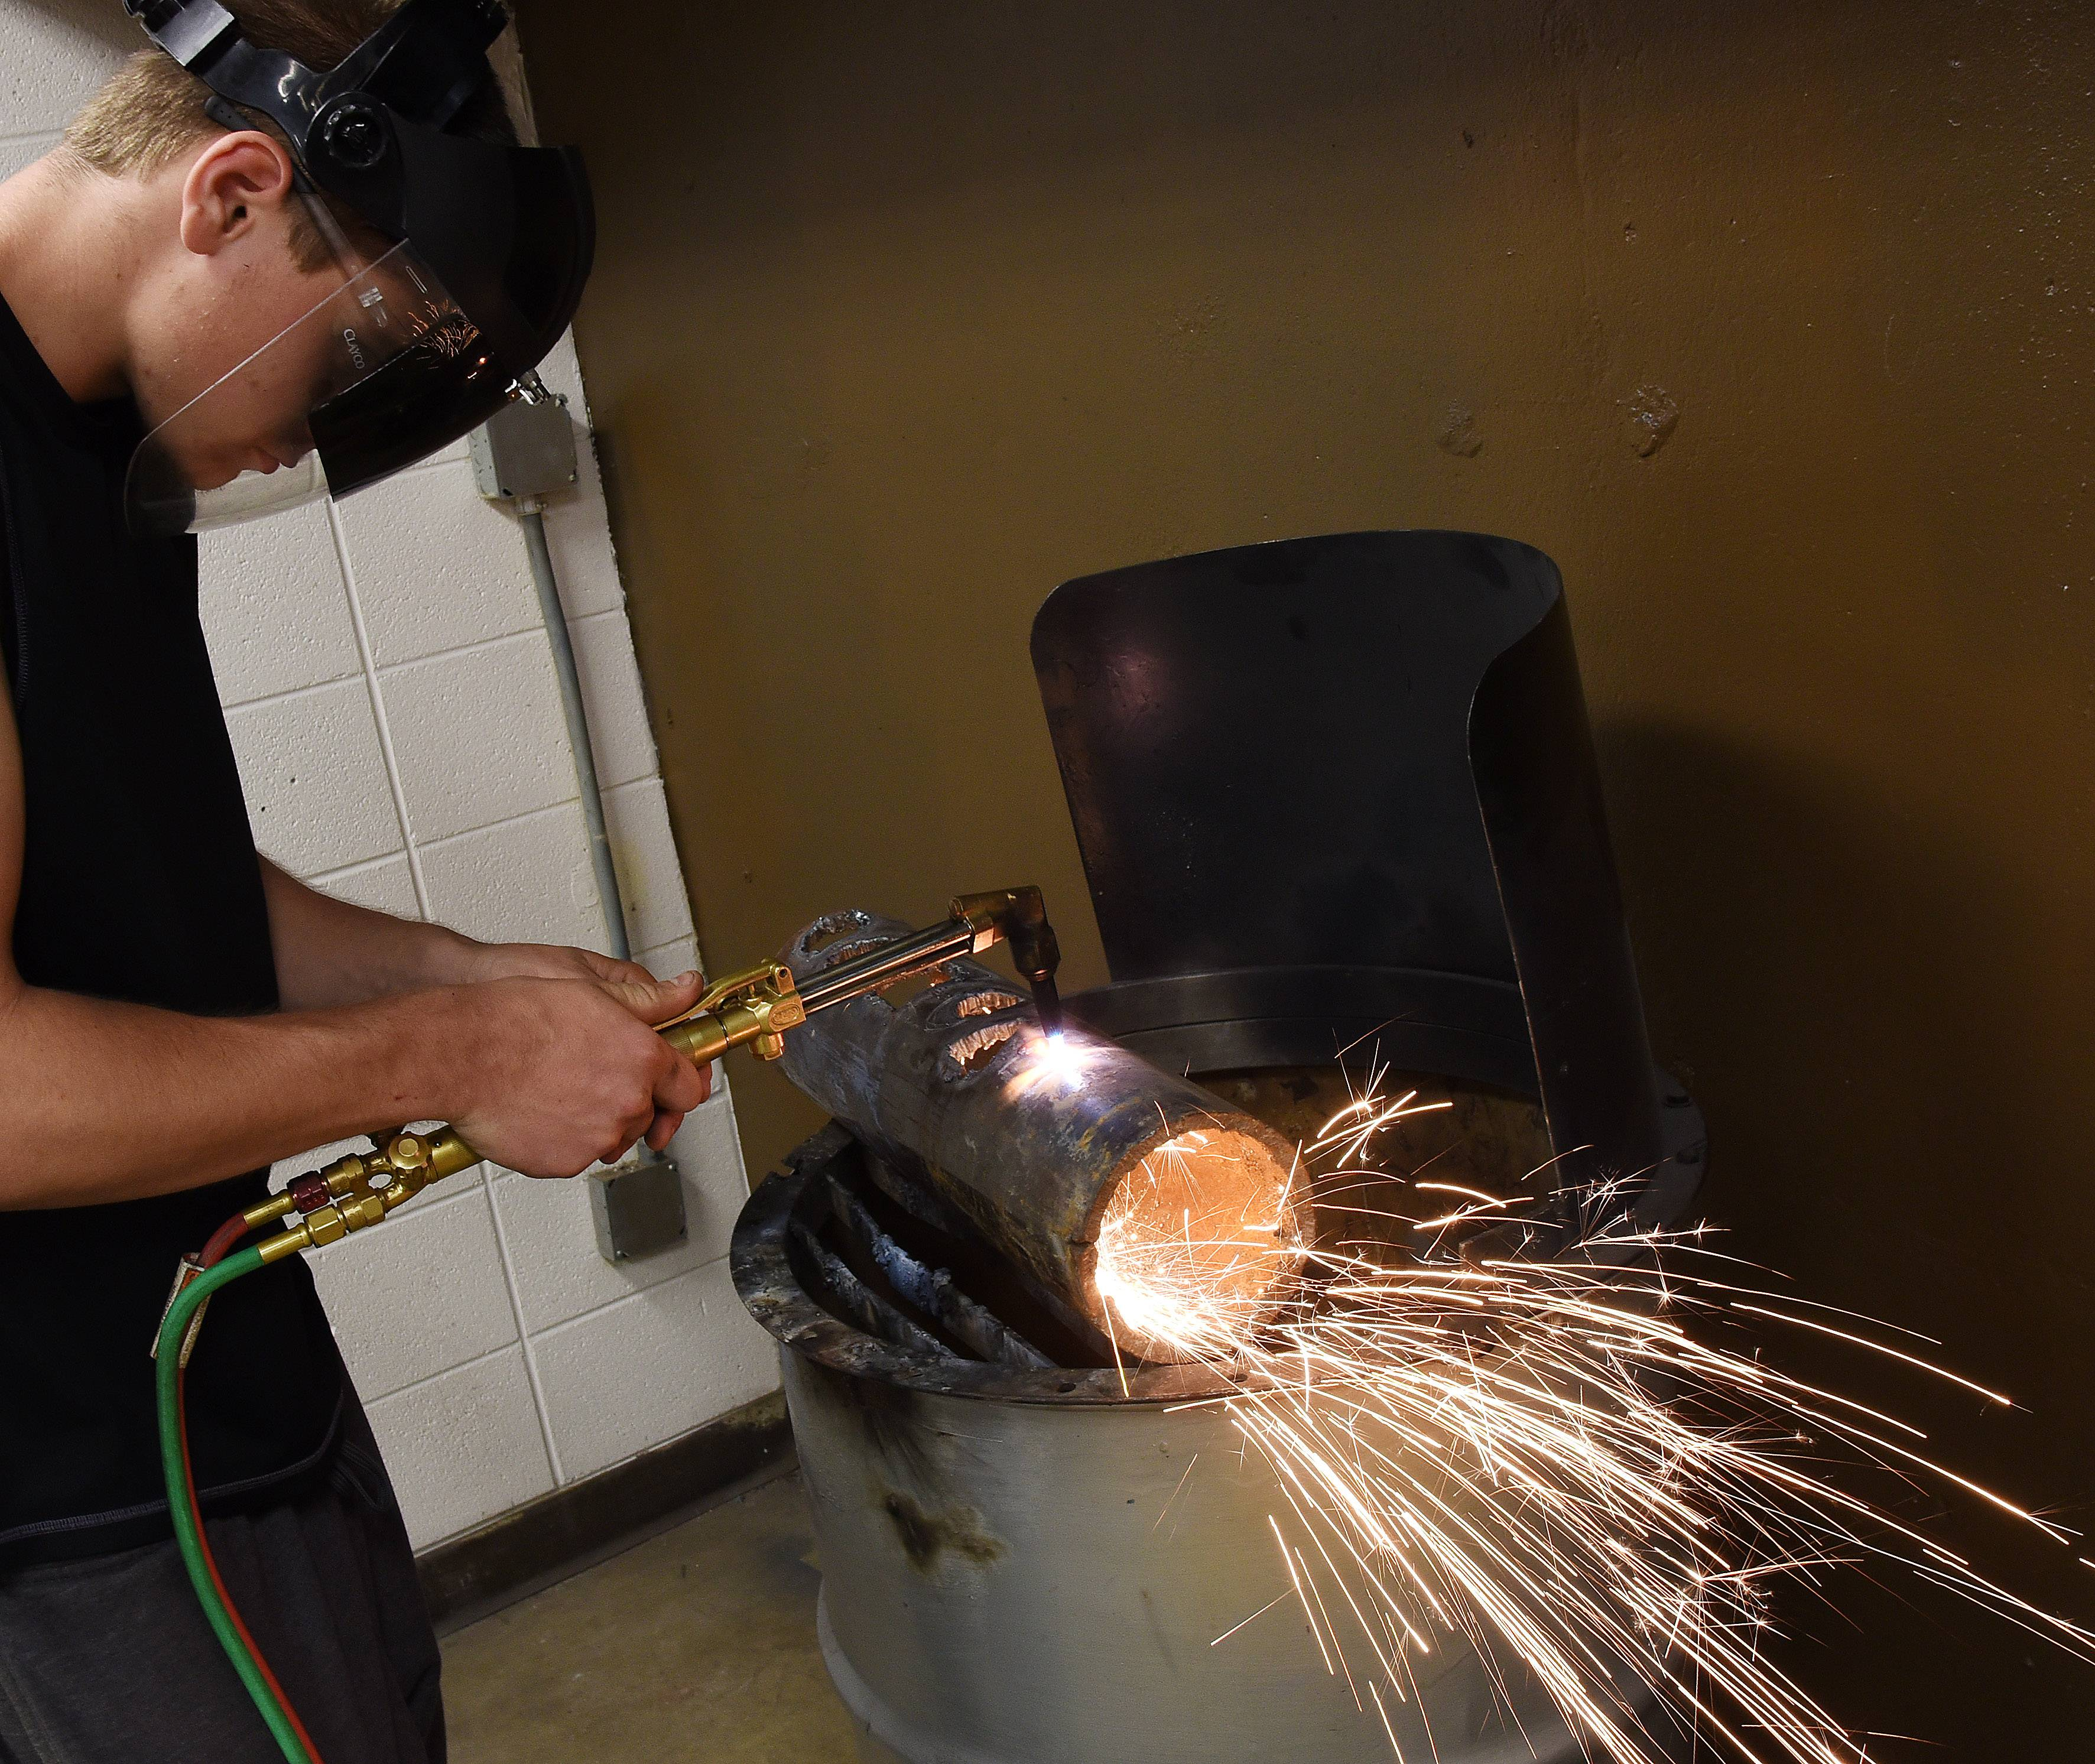 Senior J.J. Meyer uses an oxygen-acetylene cutting torch during a welding class at Elgin High School last spring. Elgin Area School District U-46 plans to spend $643,000 renovating the school's welding lab.